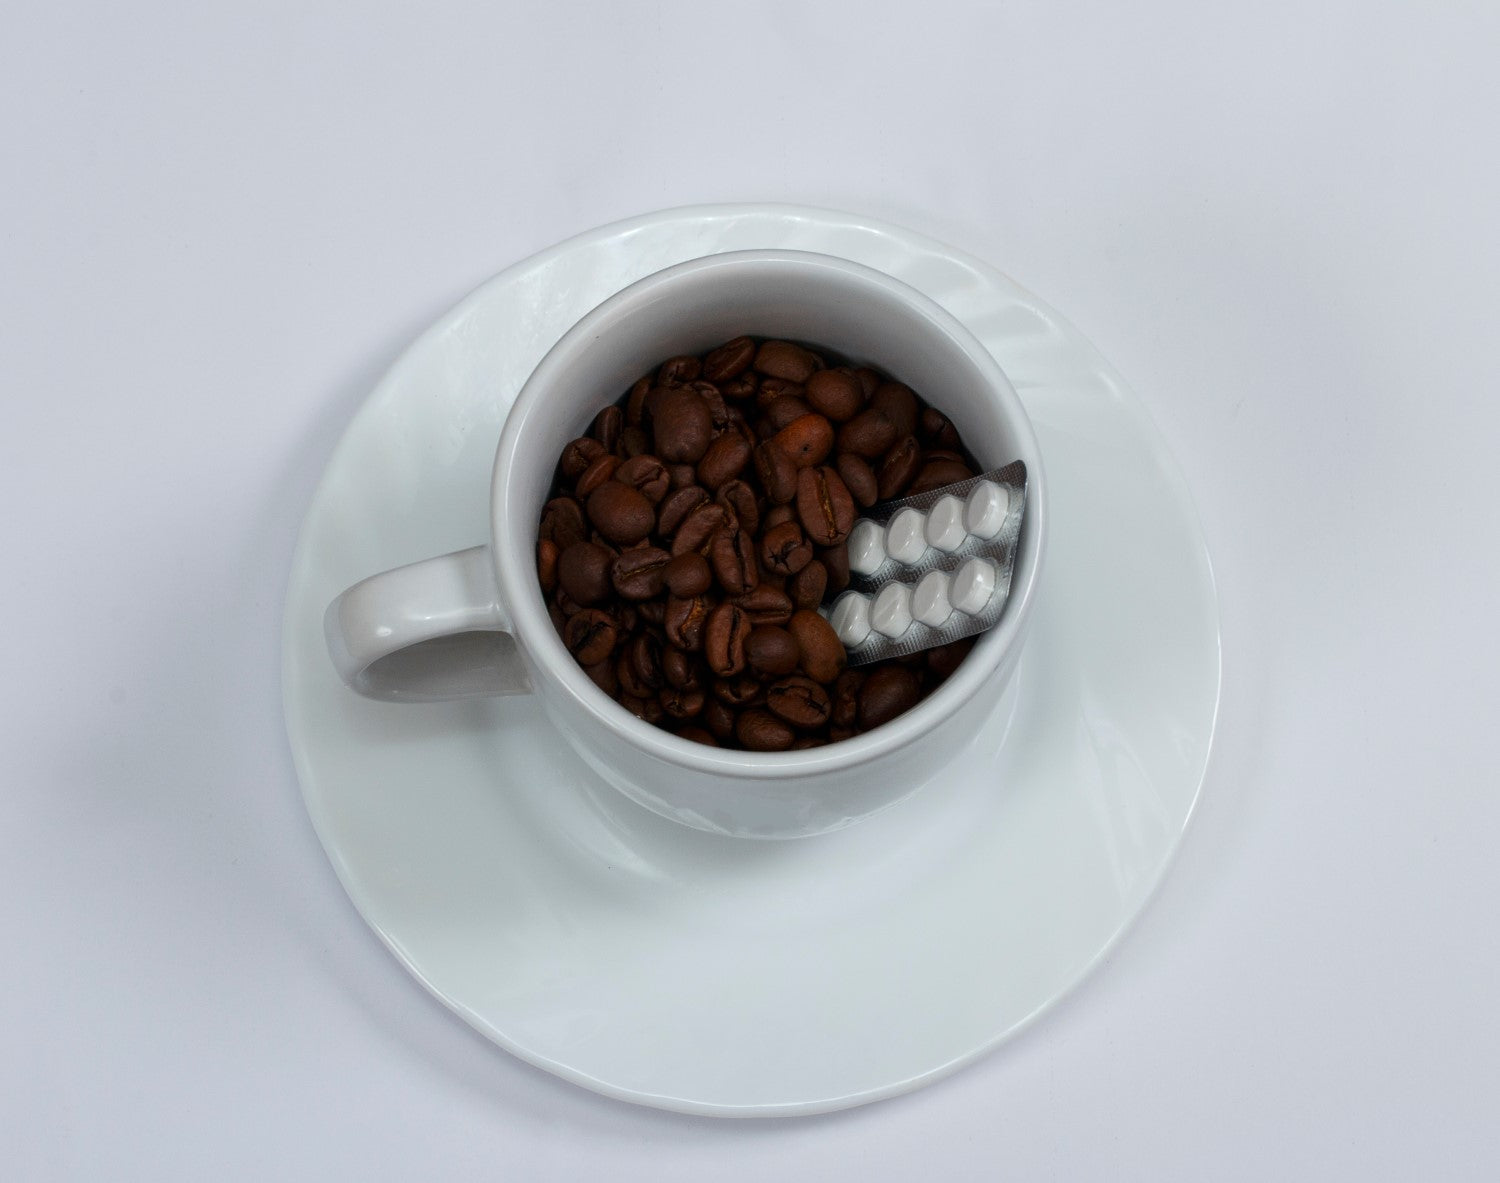 coffee beans with med inside the cup